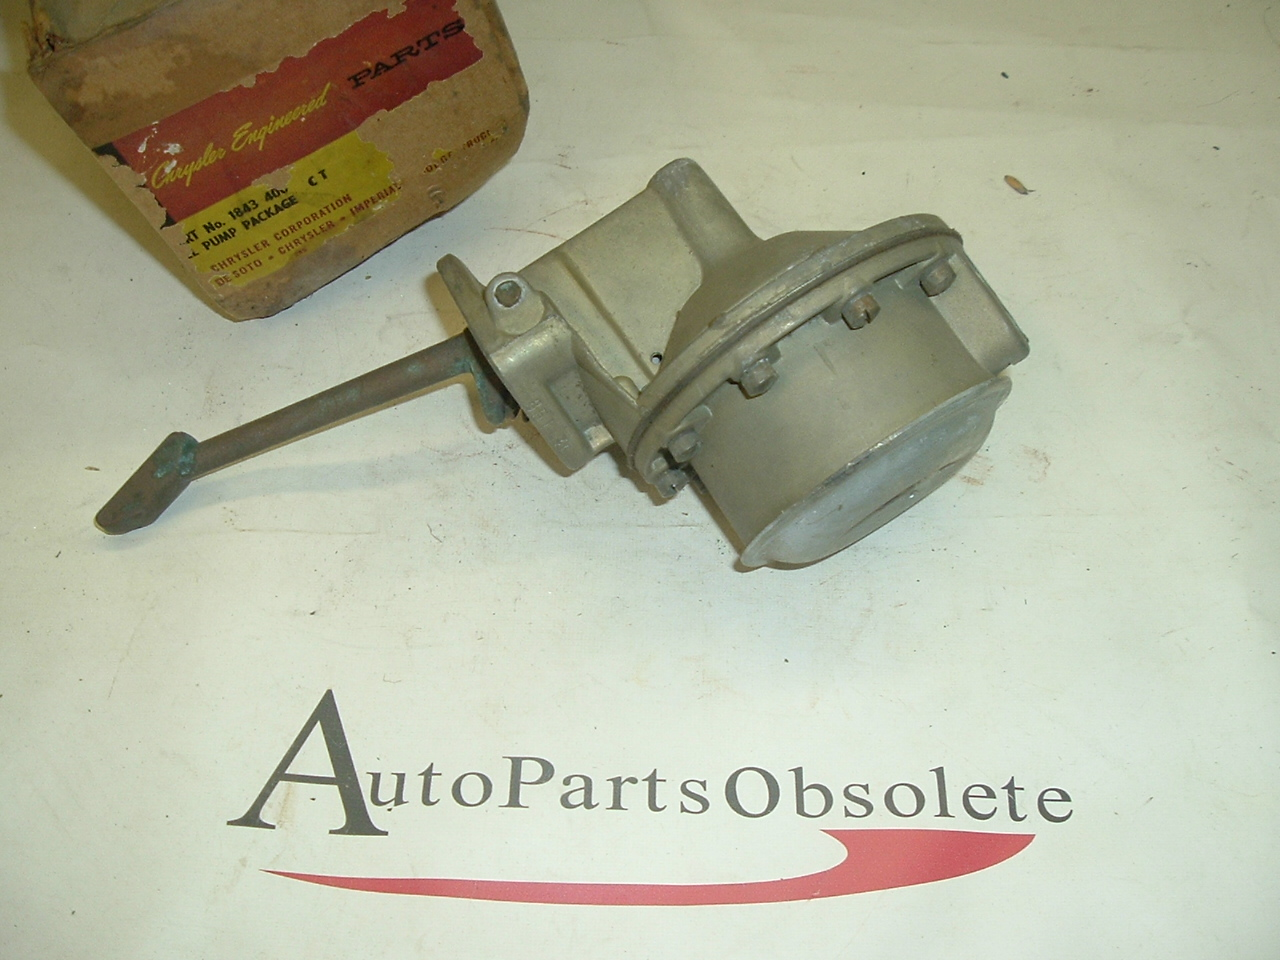 1957 -63 Plymouth Dodge v8 fuel pump #1843400 (a 1843400)